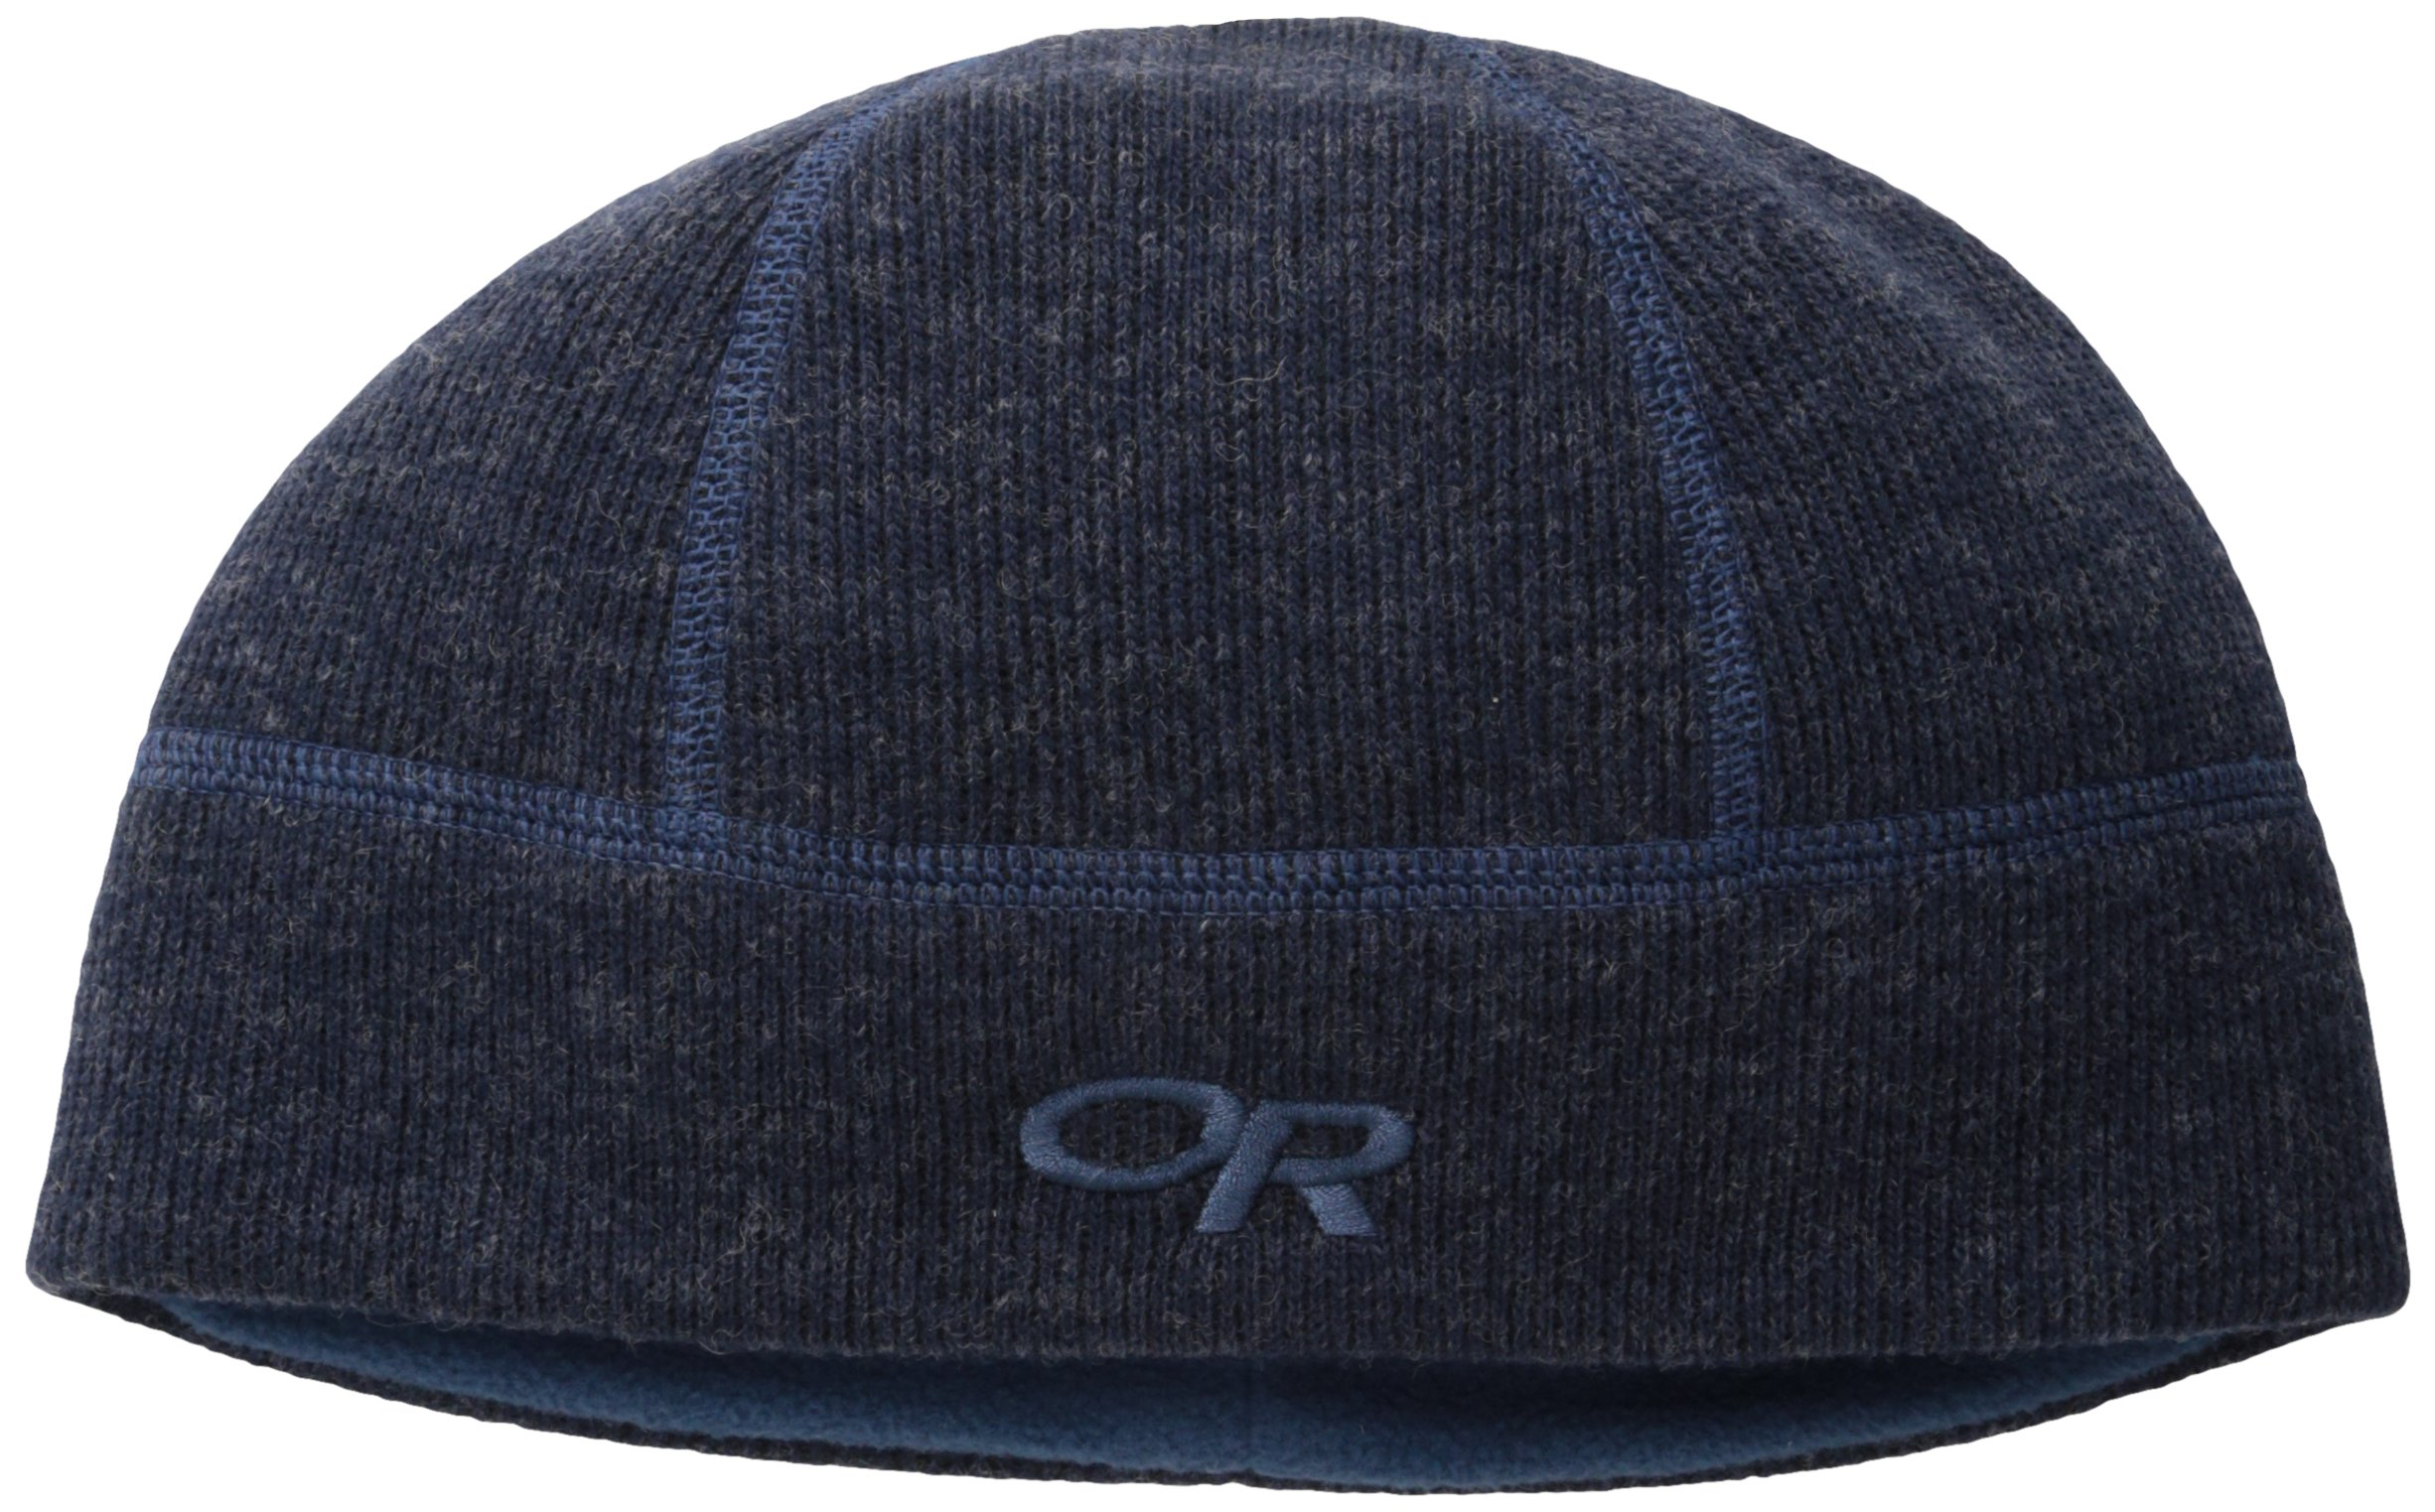 Outdoor Research Flurry Beanie, Night, Small/Medium